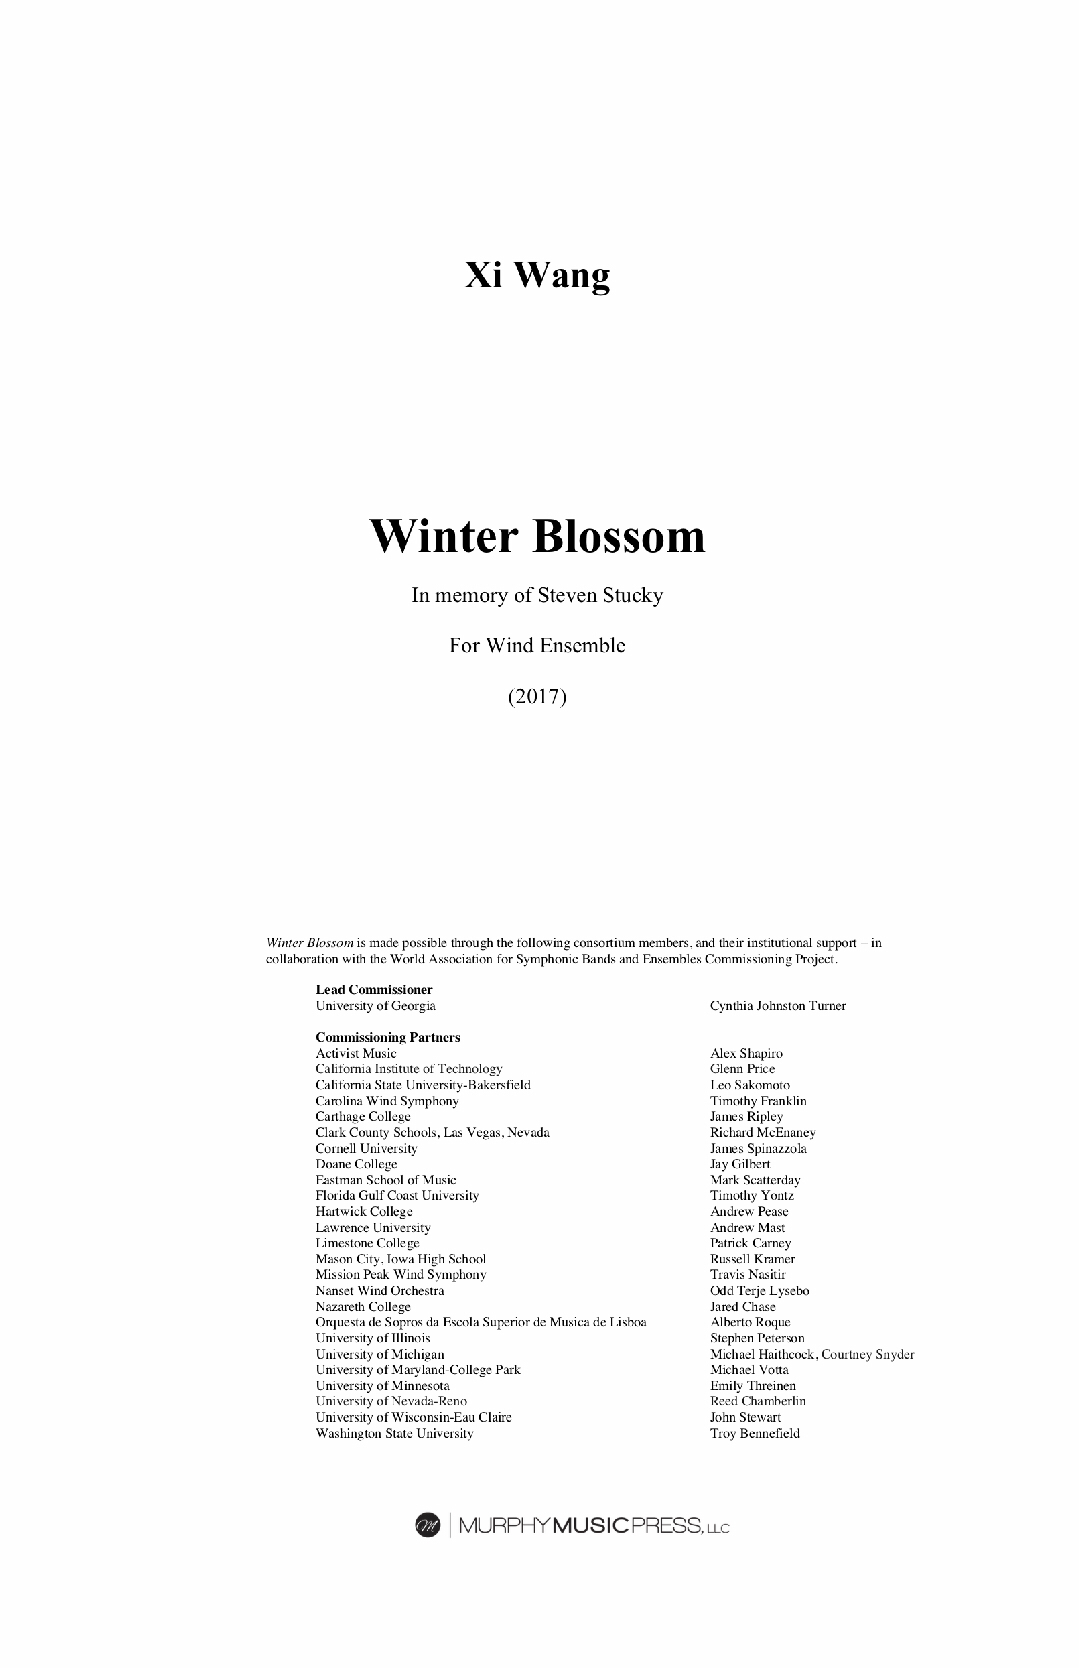 Winter Blossom (PDF Parts Rental Only) by Xi Wang